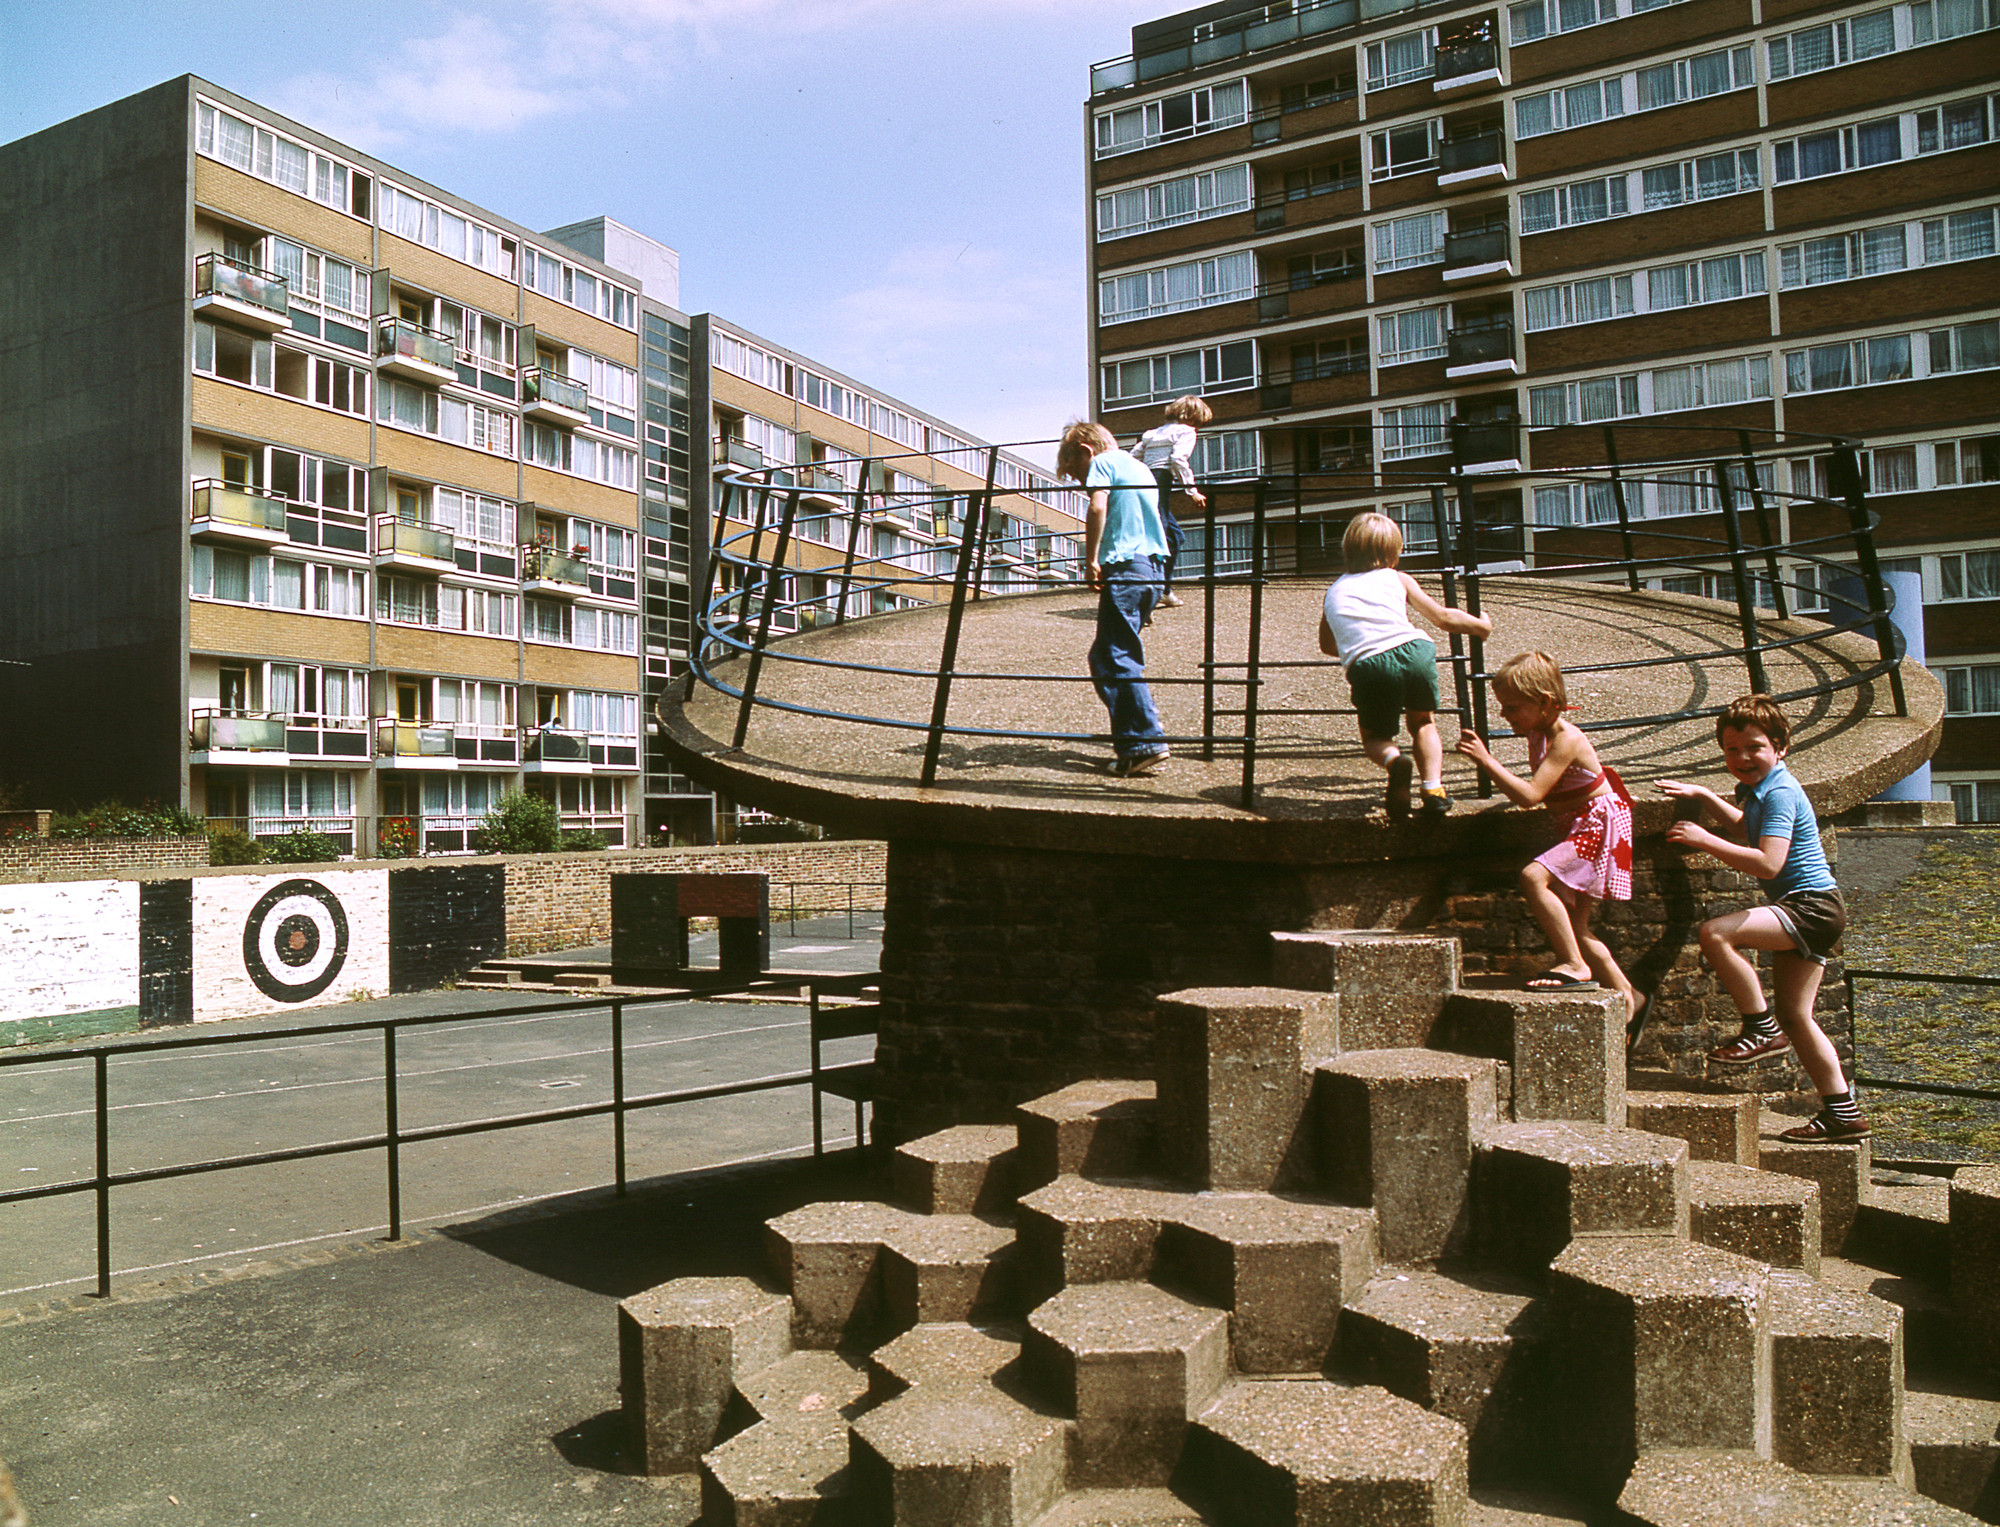 Monocle 24 Investigates Playful Design and the Role of Luck in Shaping our Cities, Churchill Gardens Estate, London. Image © John Donat